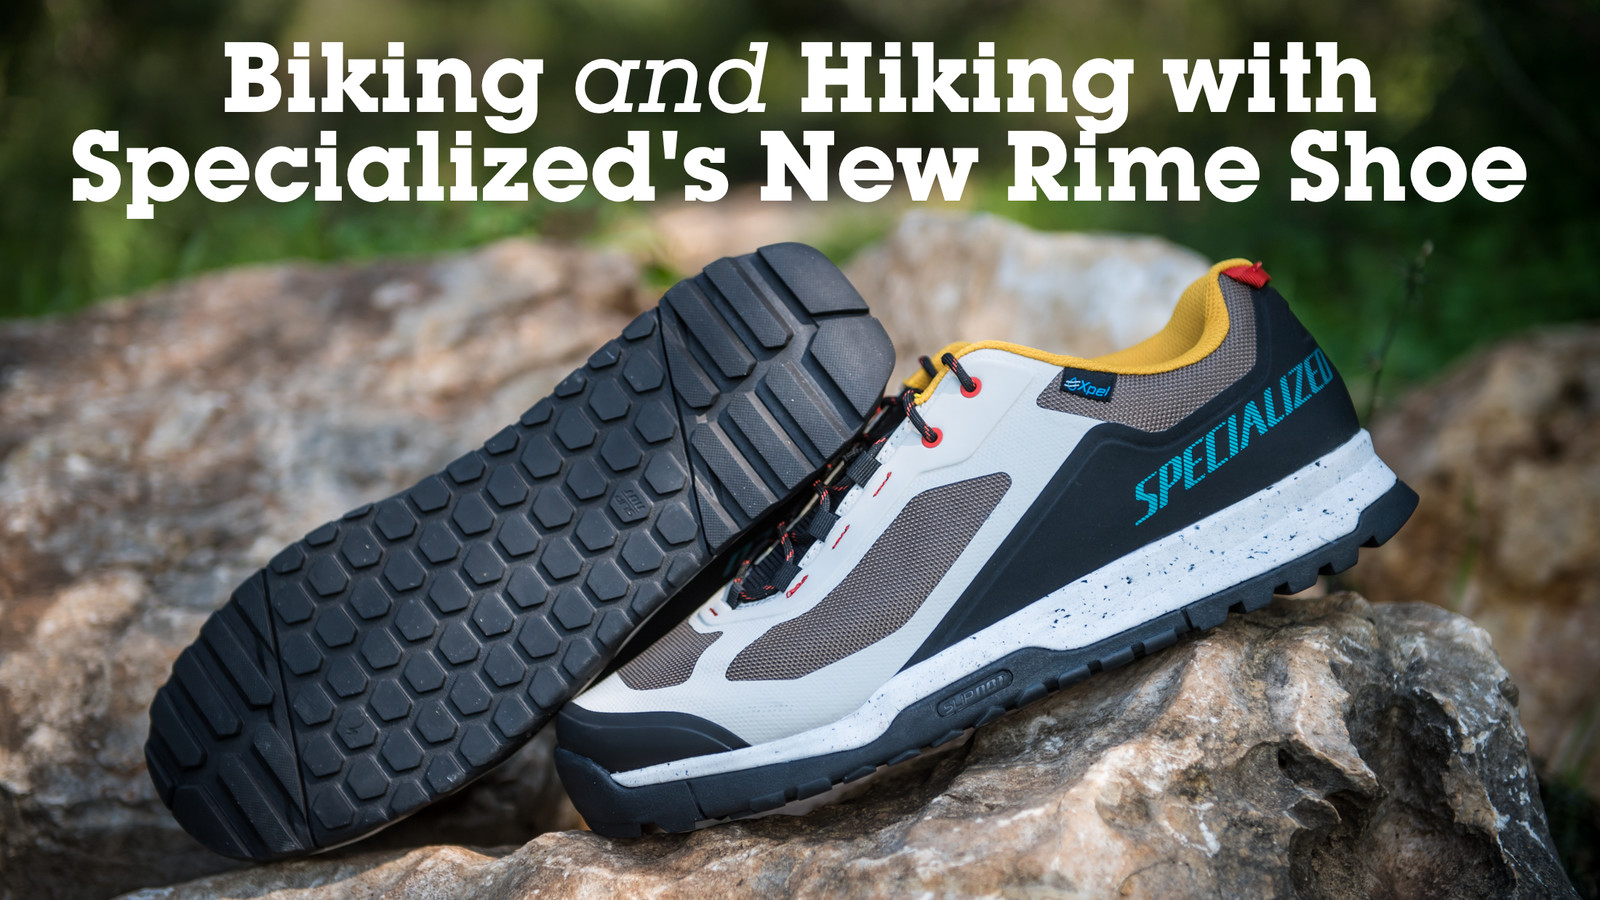 Specialized's New Rime Shoe is Made for Hiking and Biking - Review